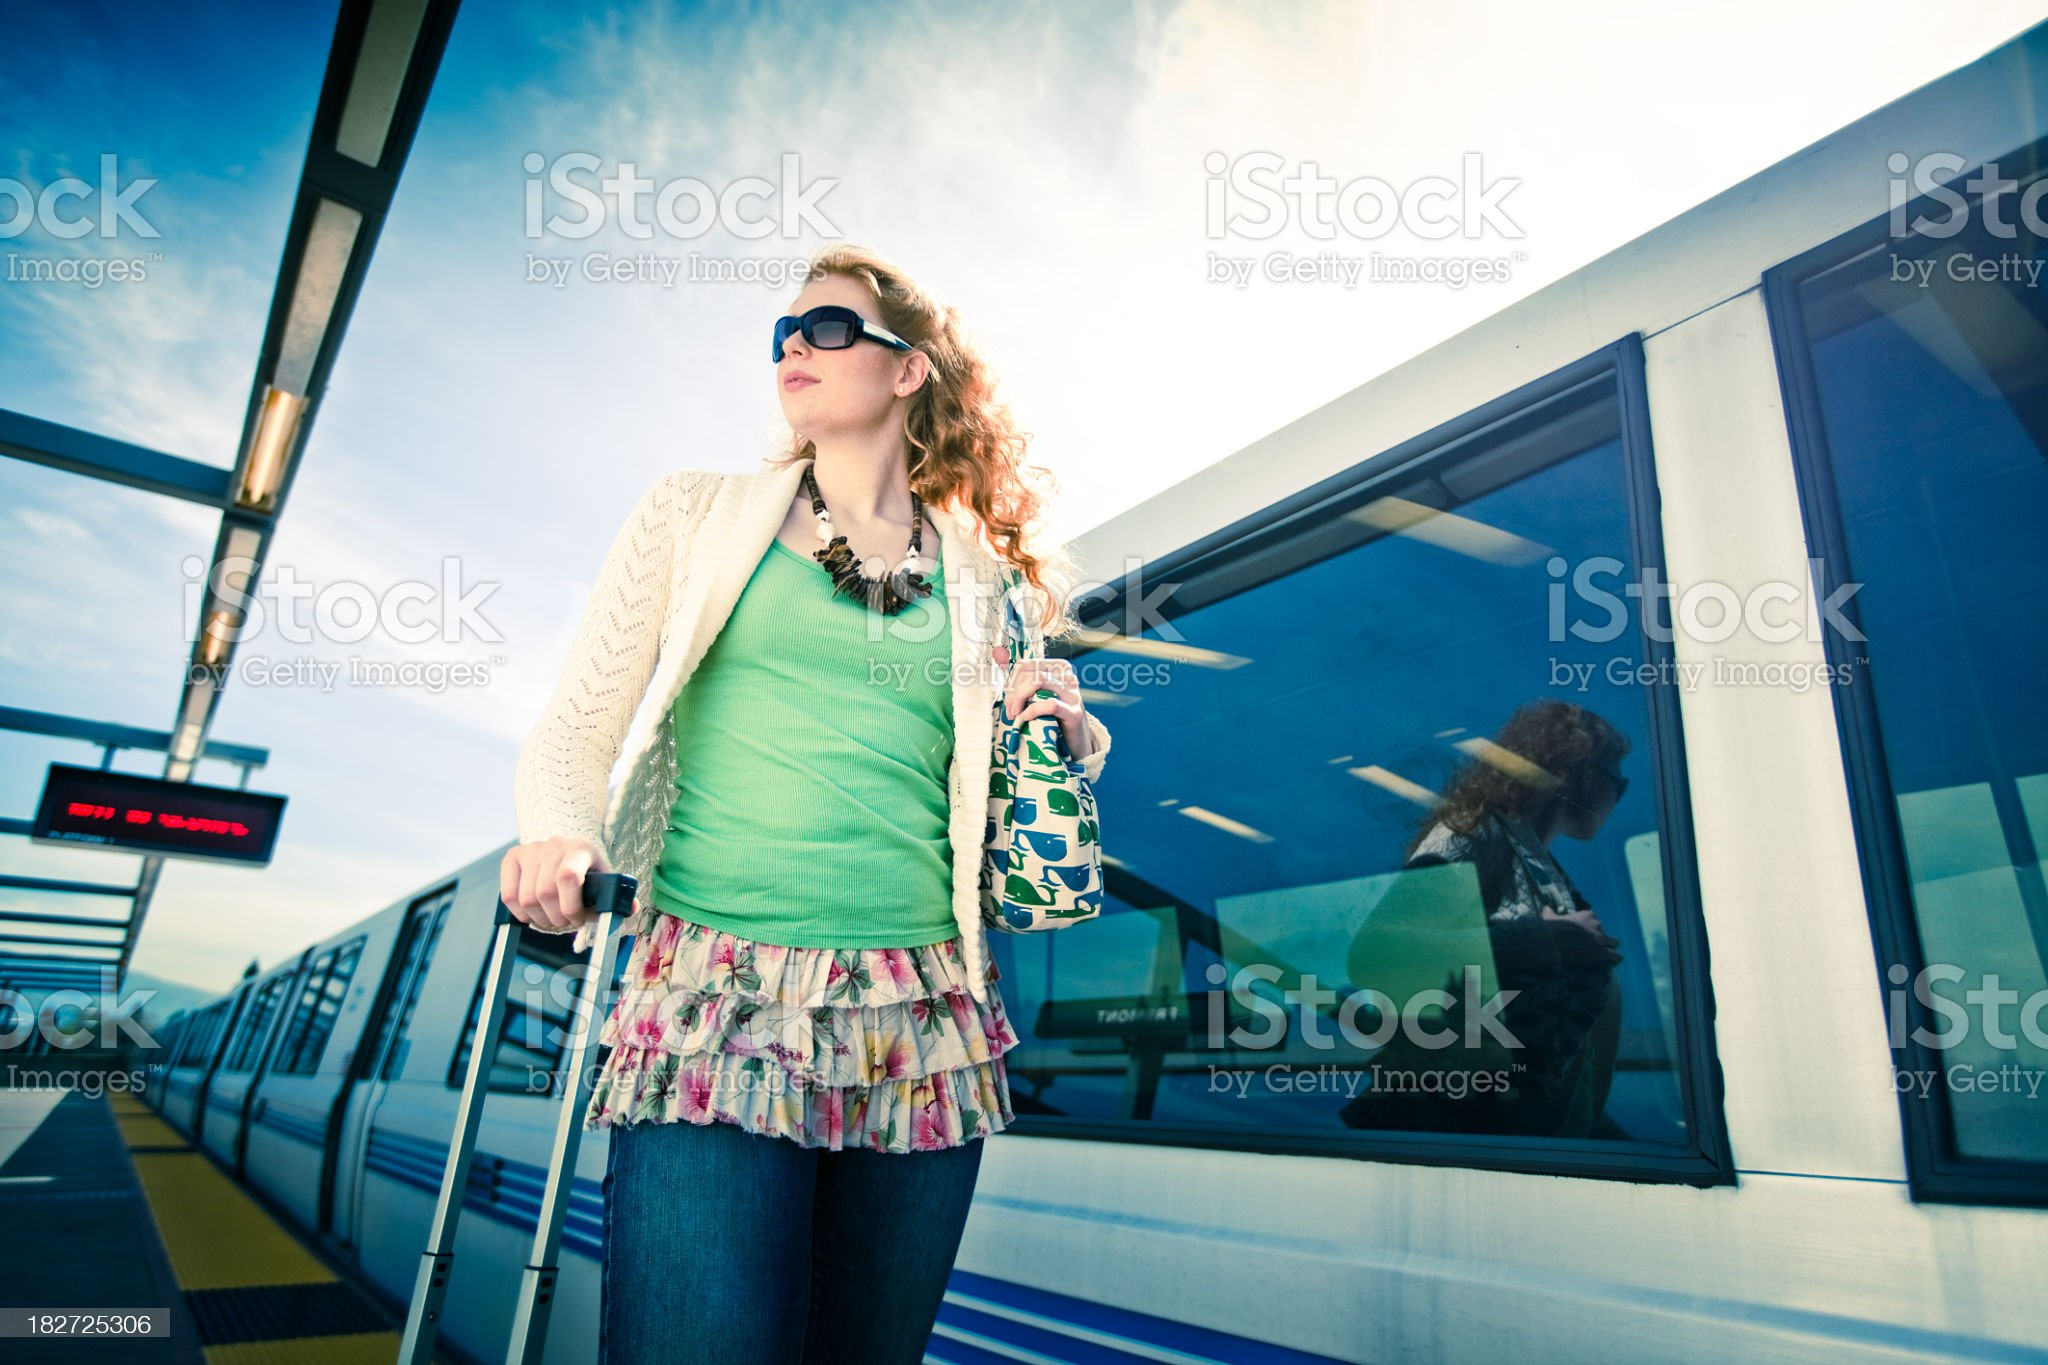 BART Commuter with Luggage (Cross-Processed) royalty-free stock photo